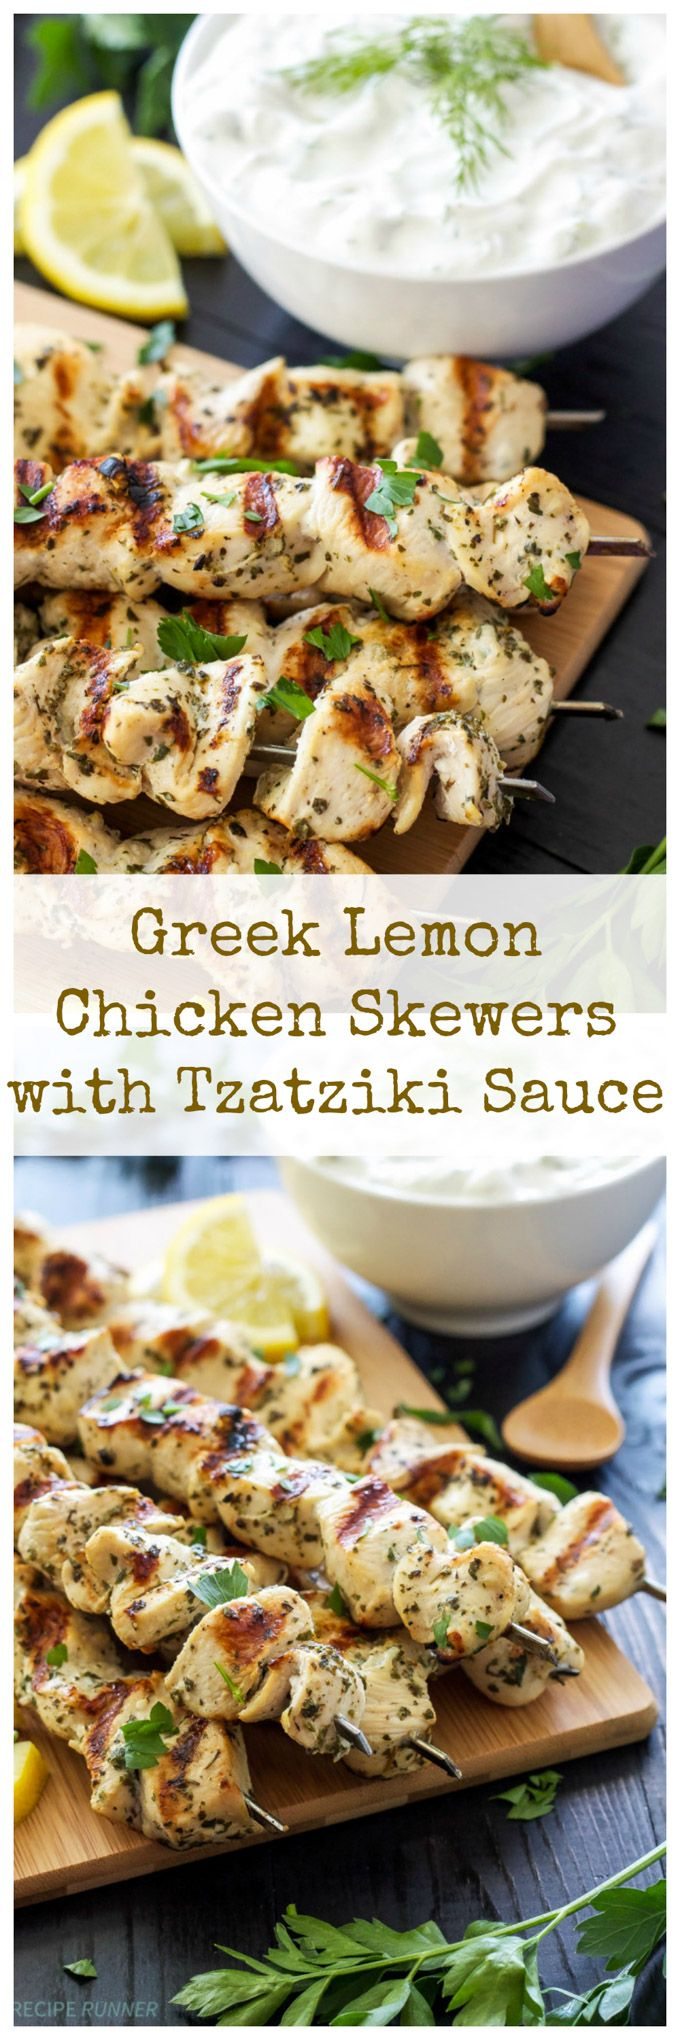 Greek Lemon Chicken Skewers with Tzatziki Sauce | Delicious and healthy Greek chic